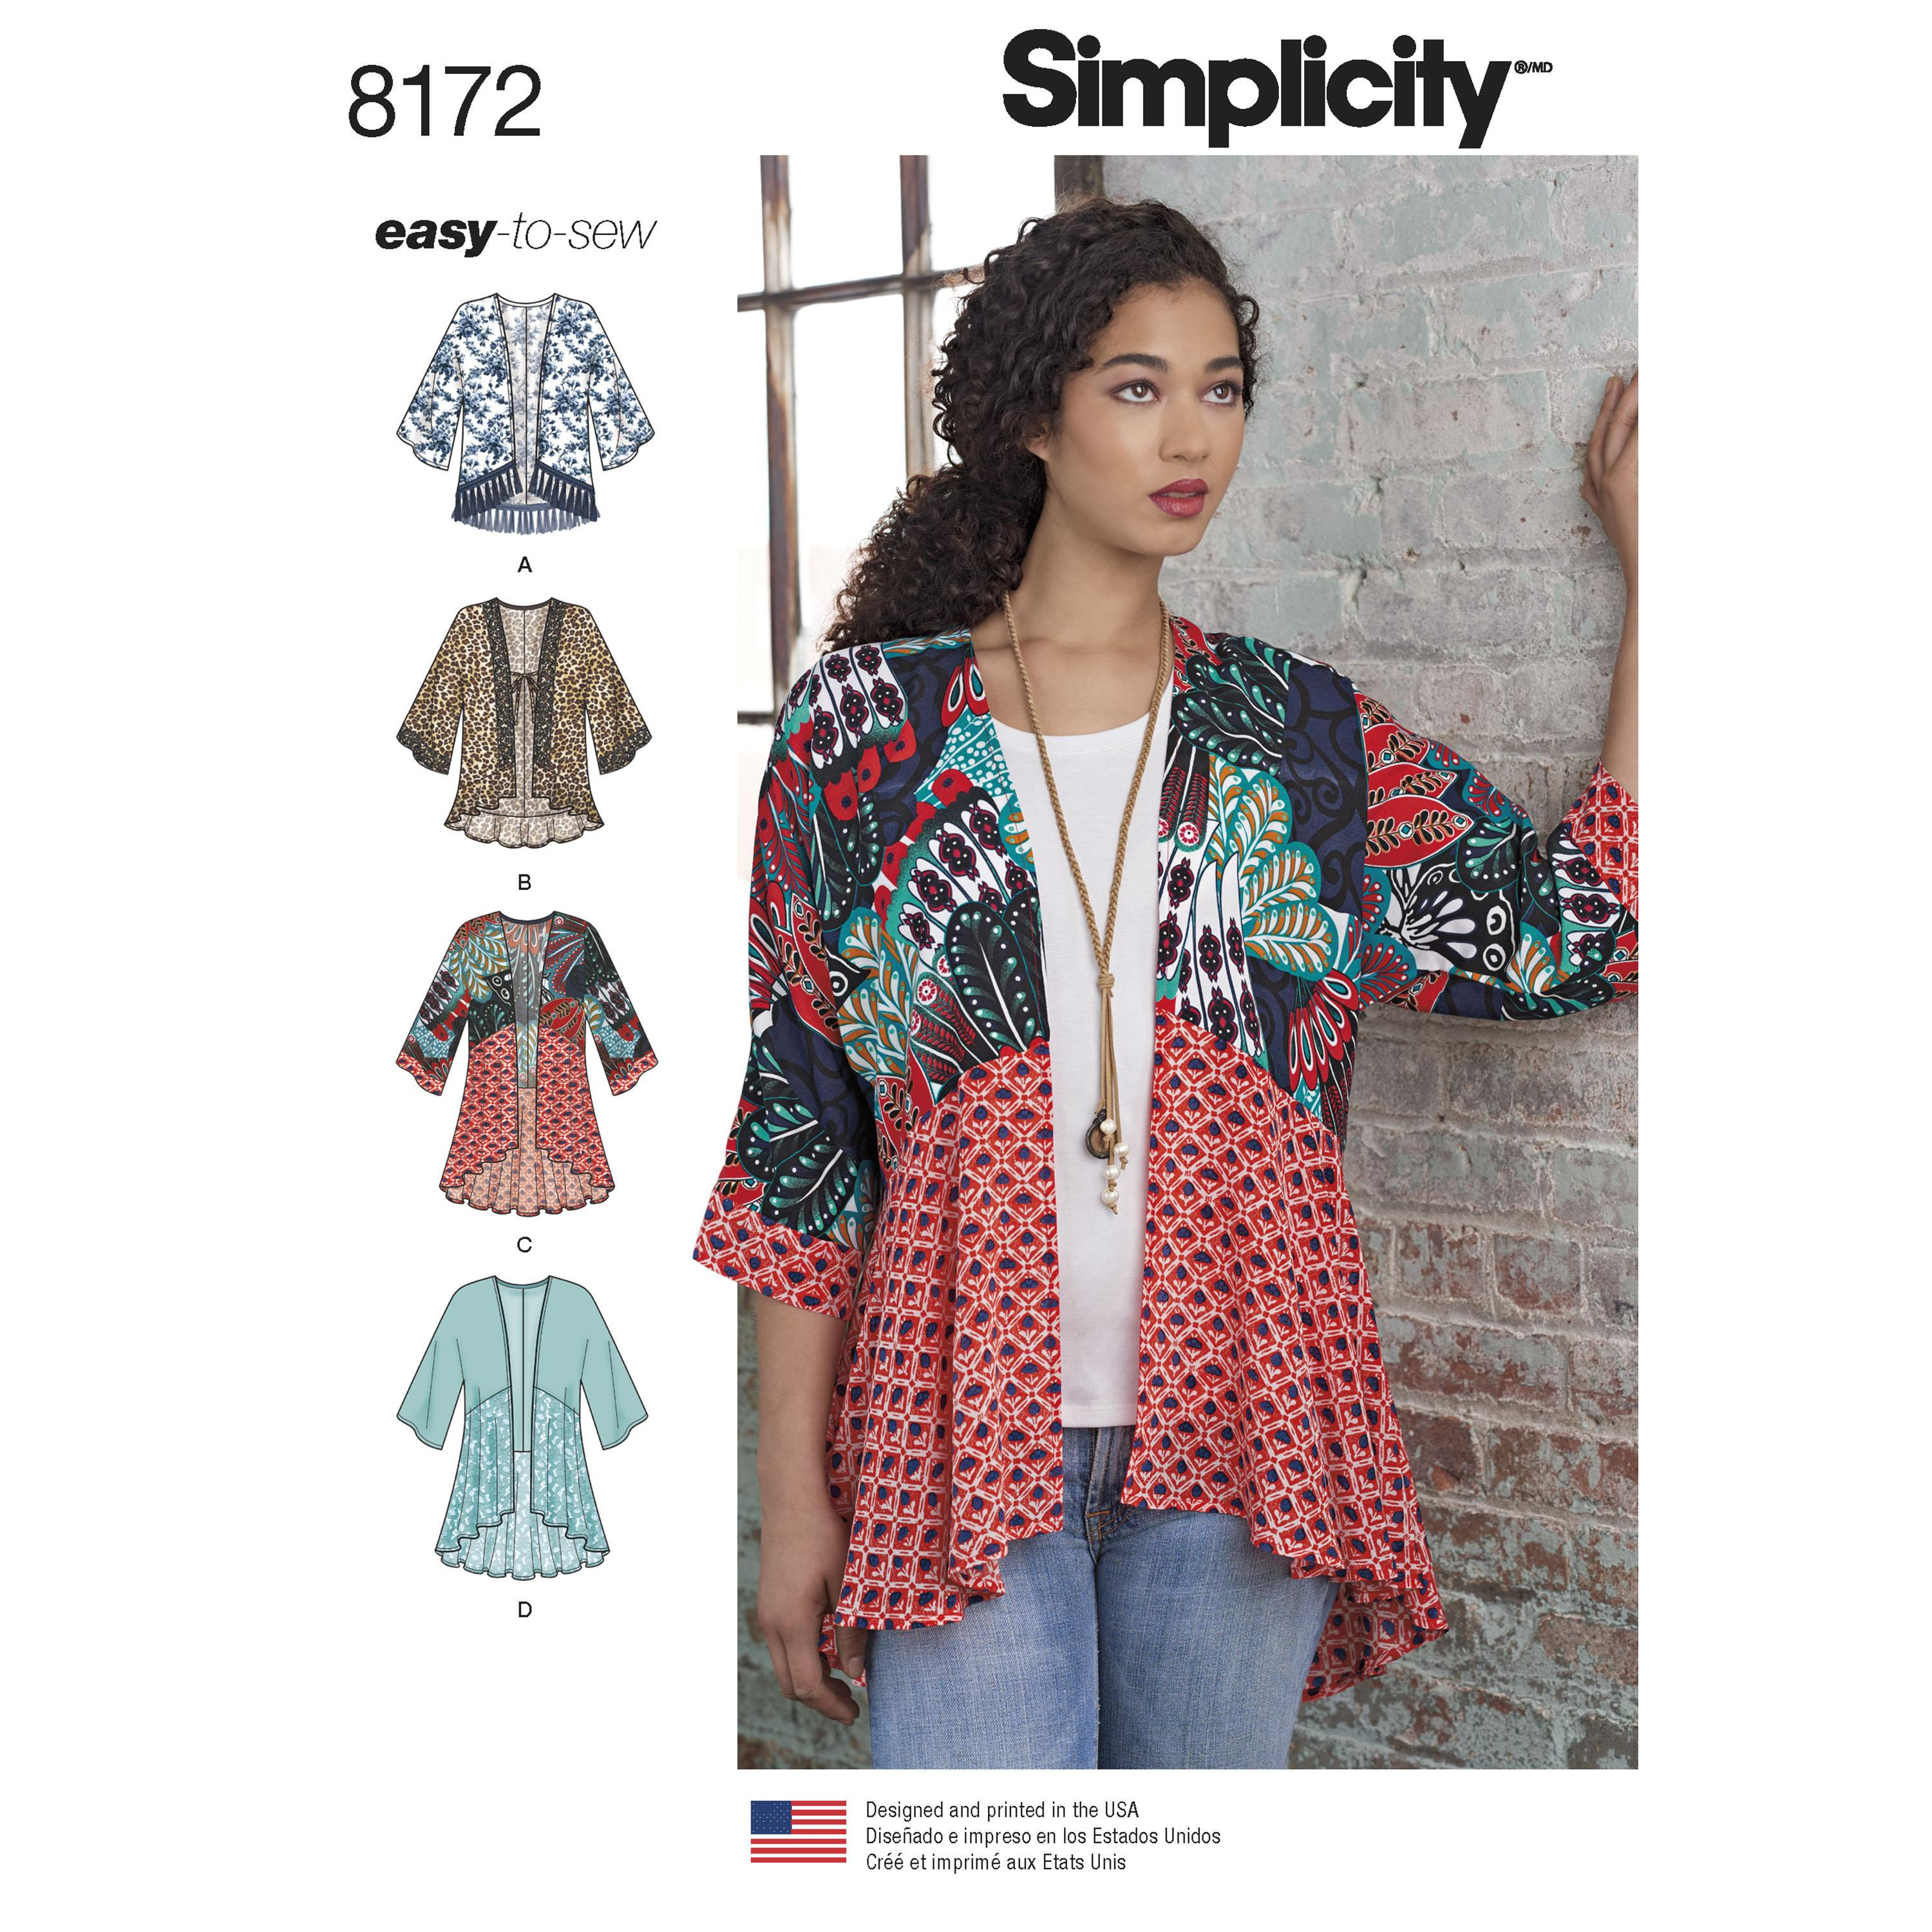 Simplicity S8172 Women's Fashion Kimonos with Length, Fabric and Trim Variations